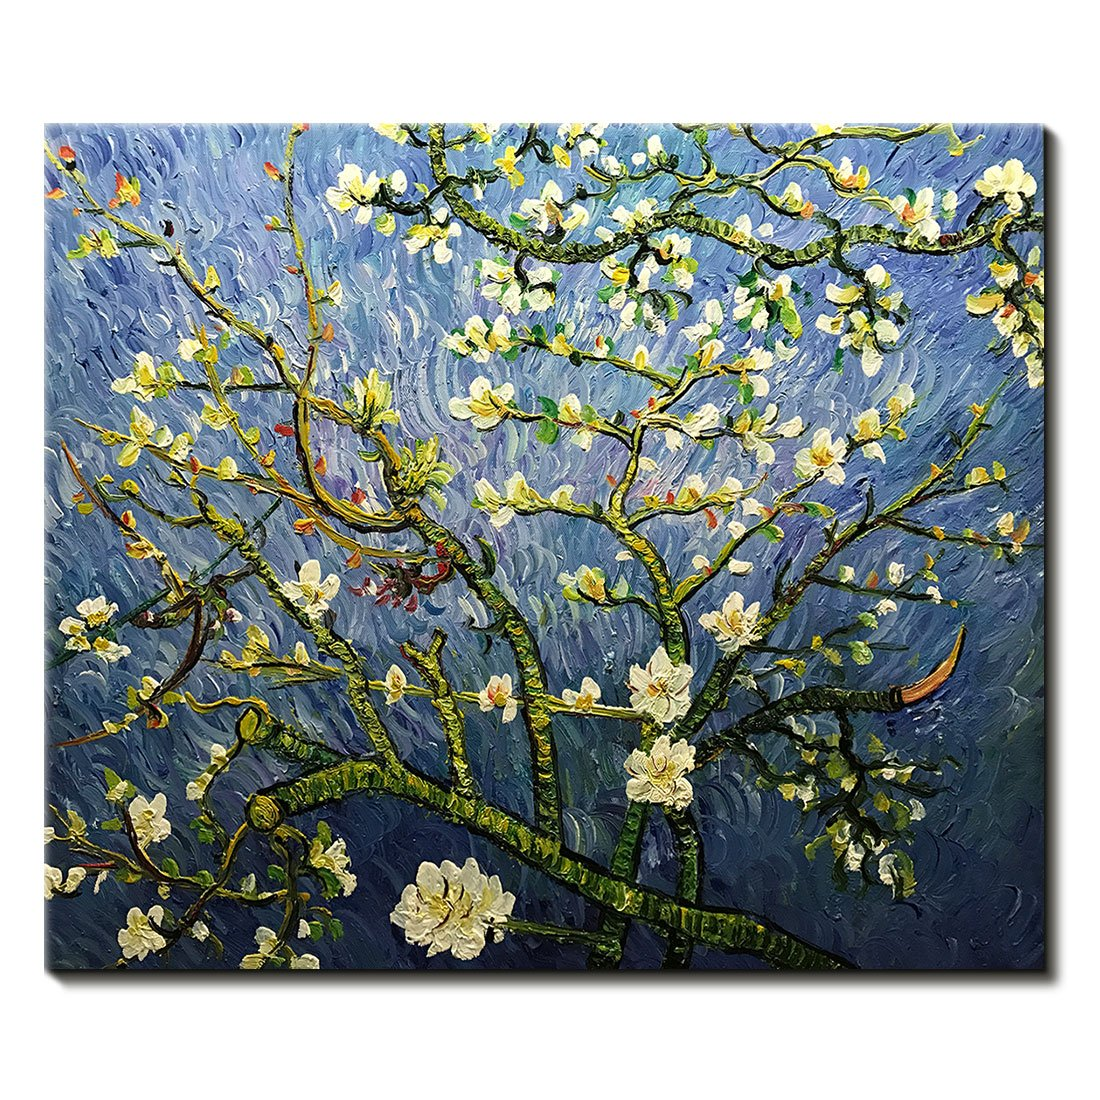 Amei Art Paintings,24x36Inch Sunflowers Van Gogh Oil Painting Reproduction Modern Hand-Painted on Canvas Flower Artwork Home Office Decor Wall Art Floral Pictures Wood Inside Framed Ready to Hang